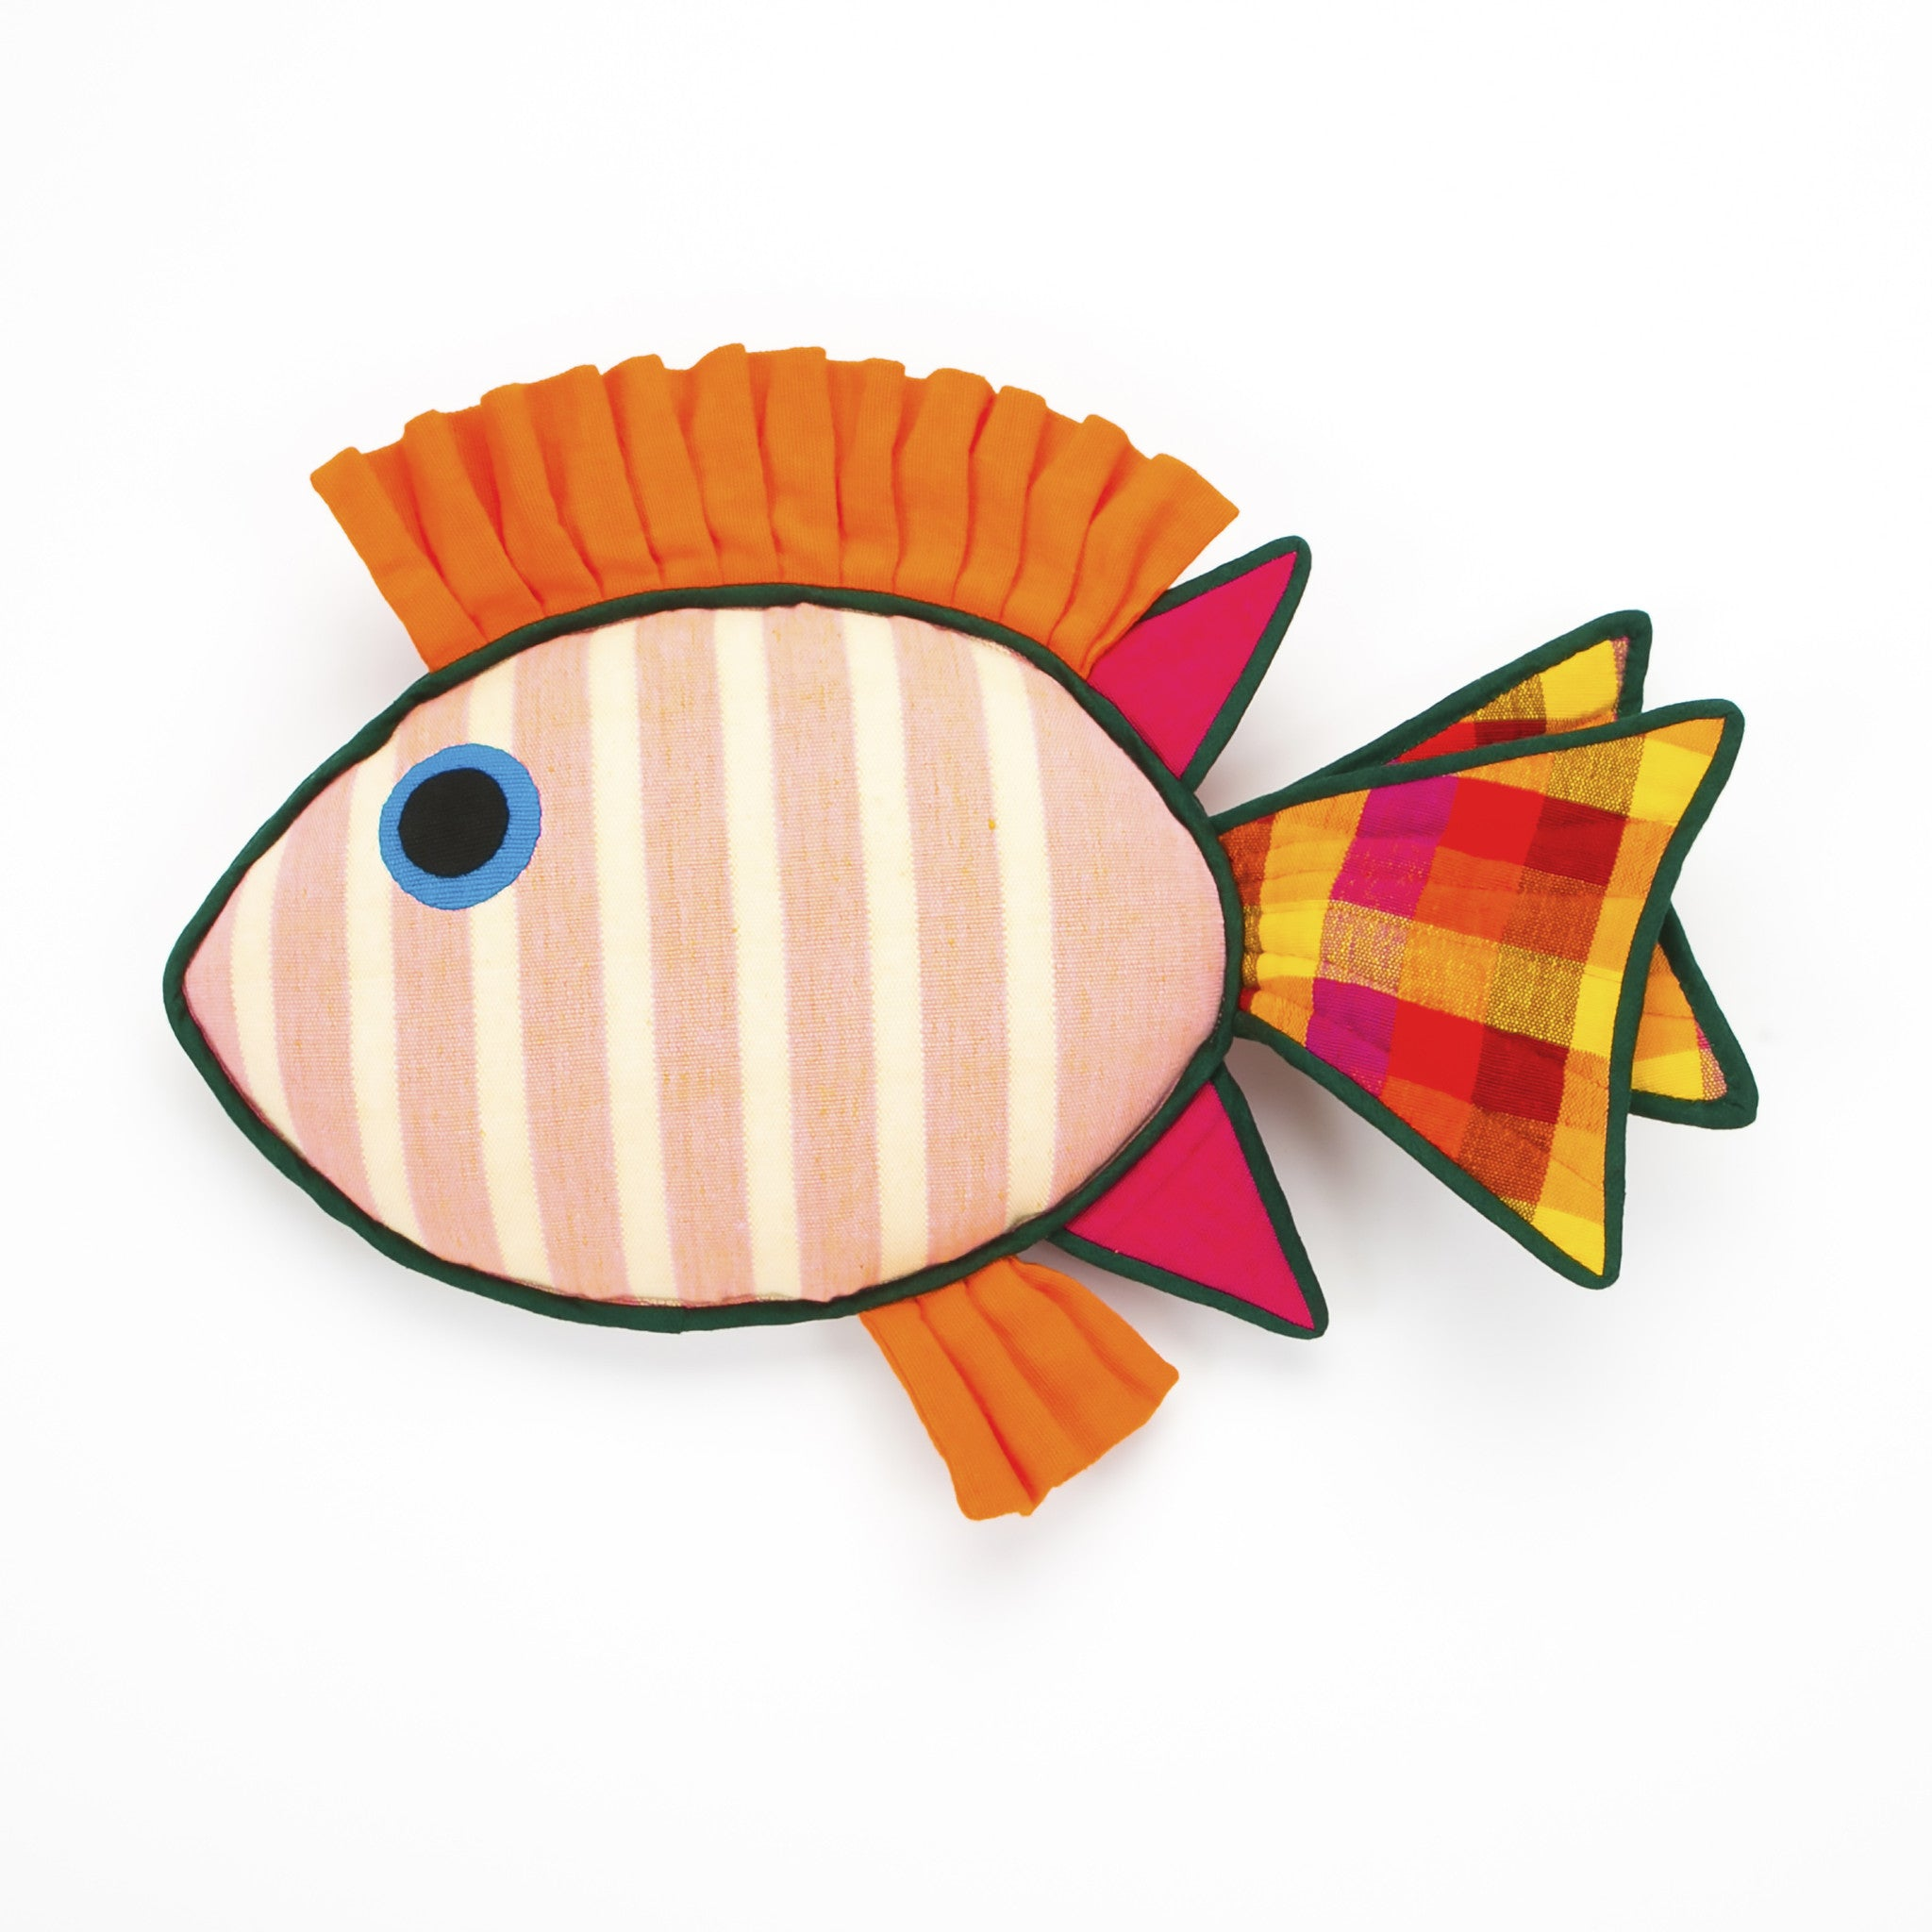 Blush, the Rabbit Fish (small size)